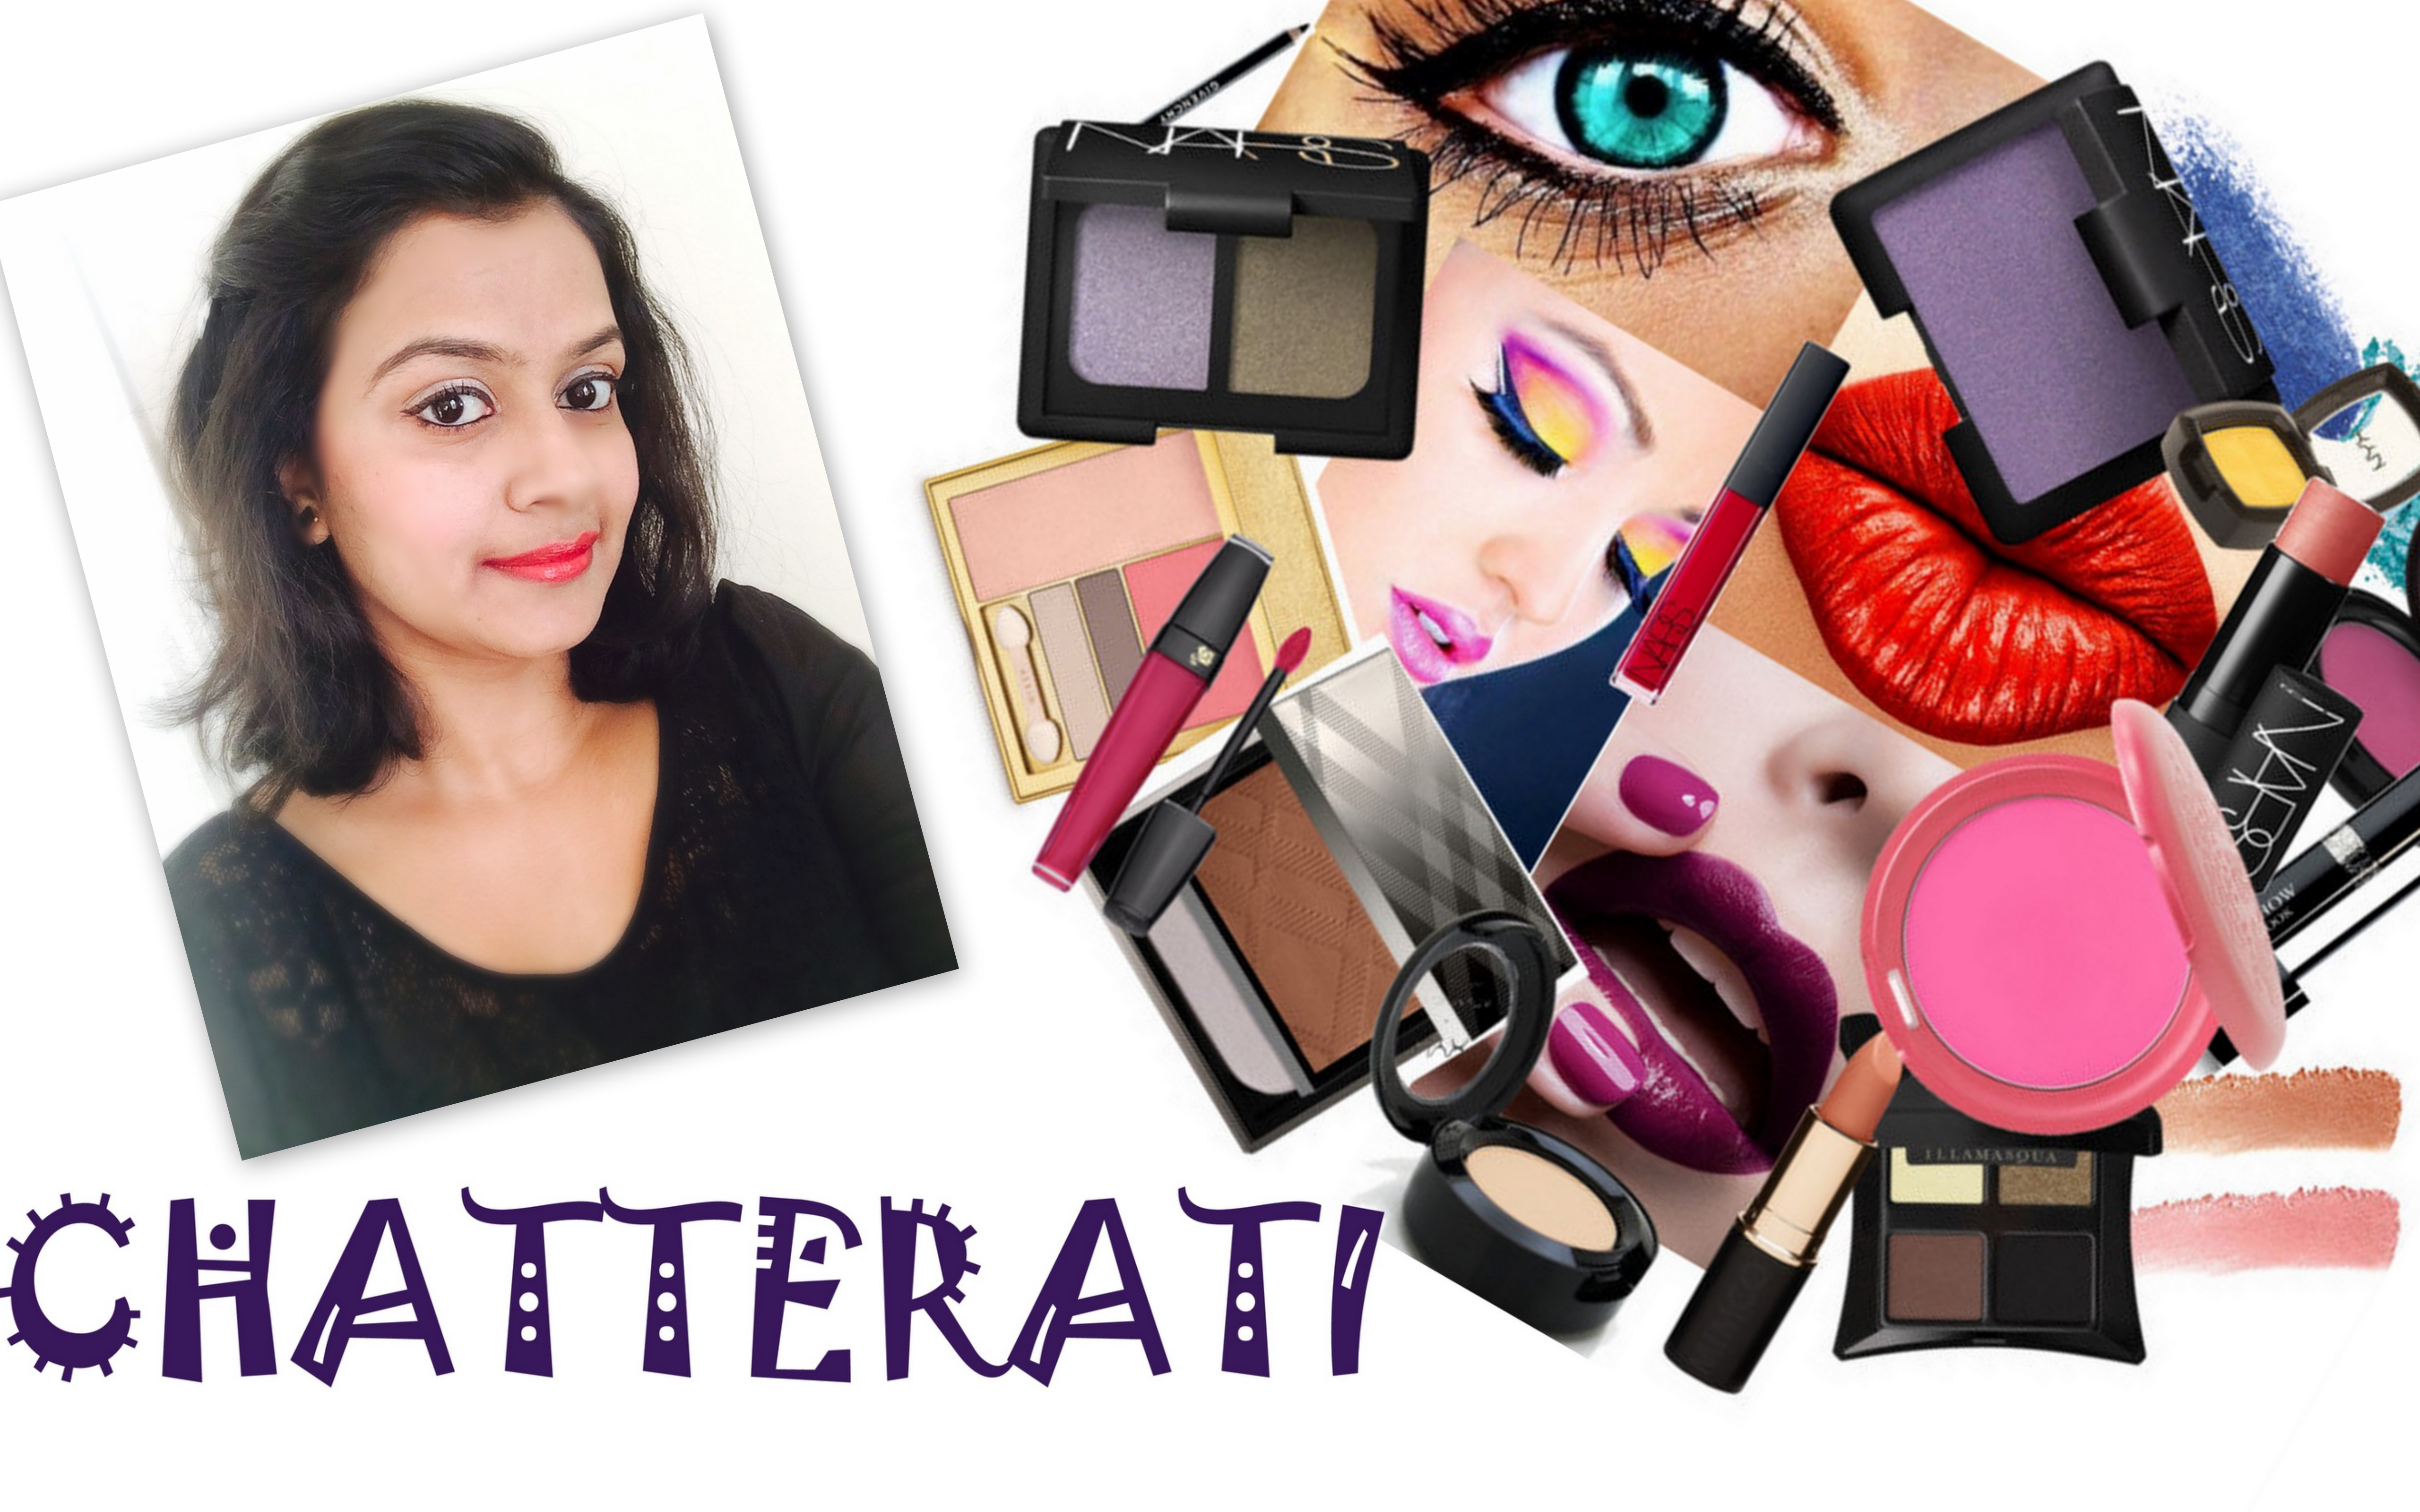 CHATTERATI : Meet Rachna of My Beauty Express